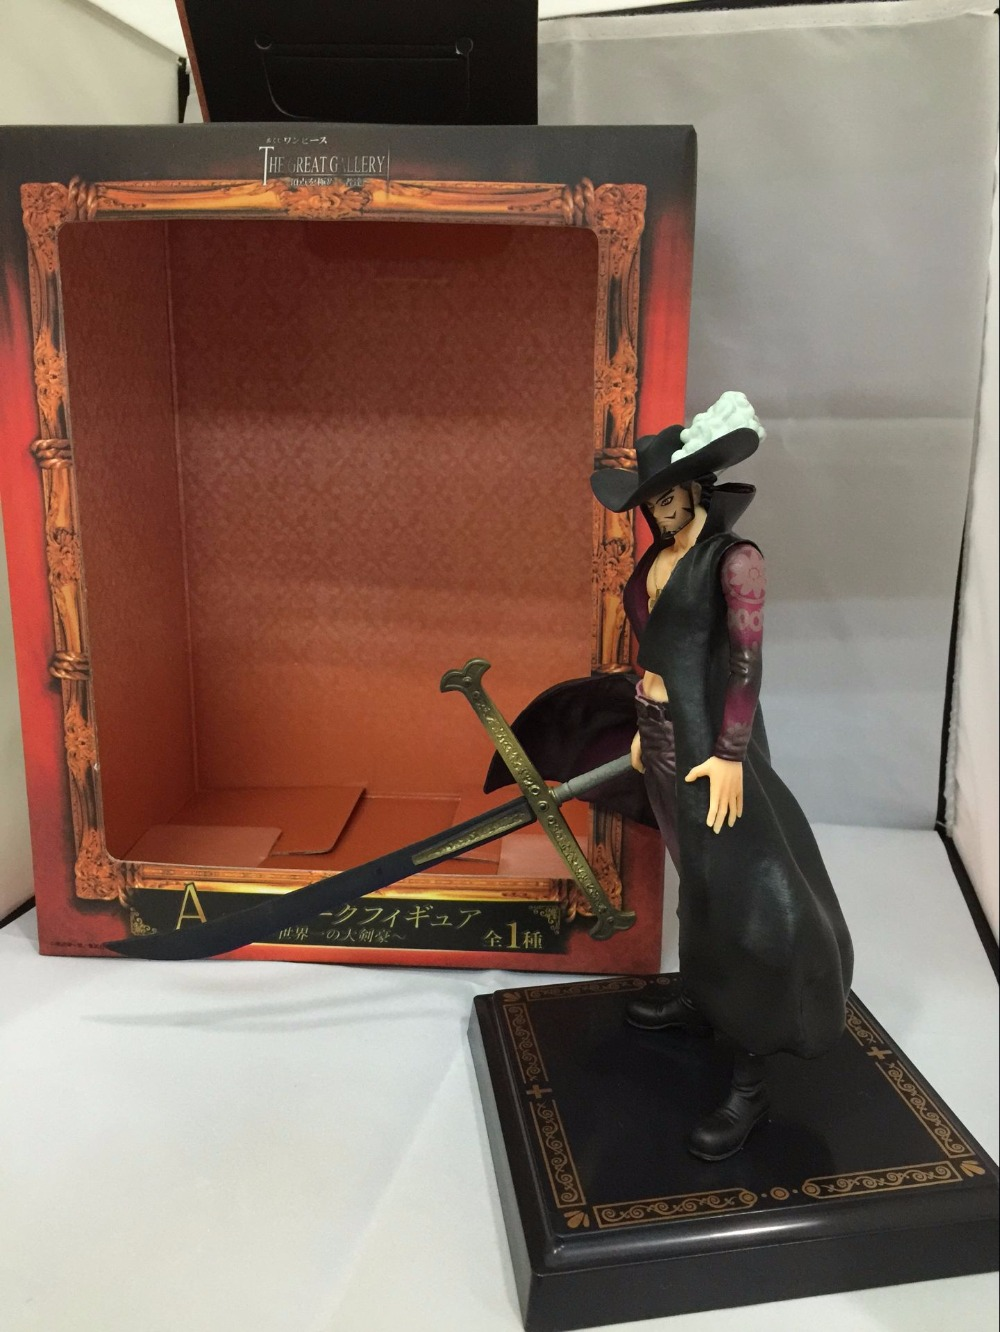 Free Shipping 8 One Piece Anime Shichibukai Dracule Mihawk Hawk Eye Prize A 2nd Ver. Boxed 20cm PVC Action Figure Model Doll anime one piece dracule mihawk pvc action figures collection model kids toys doll 20cm